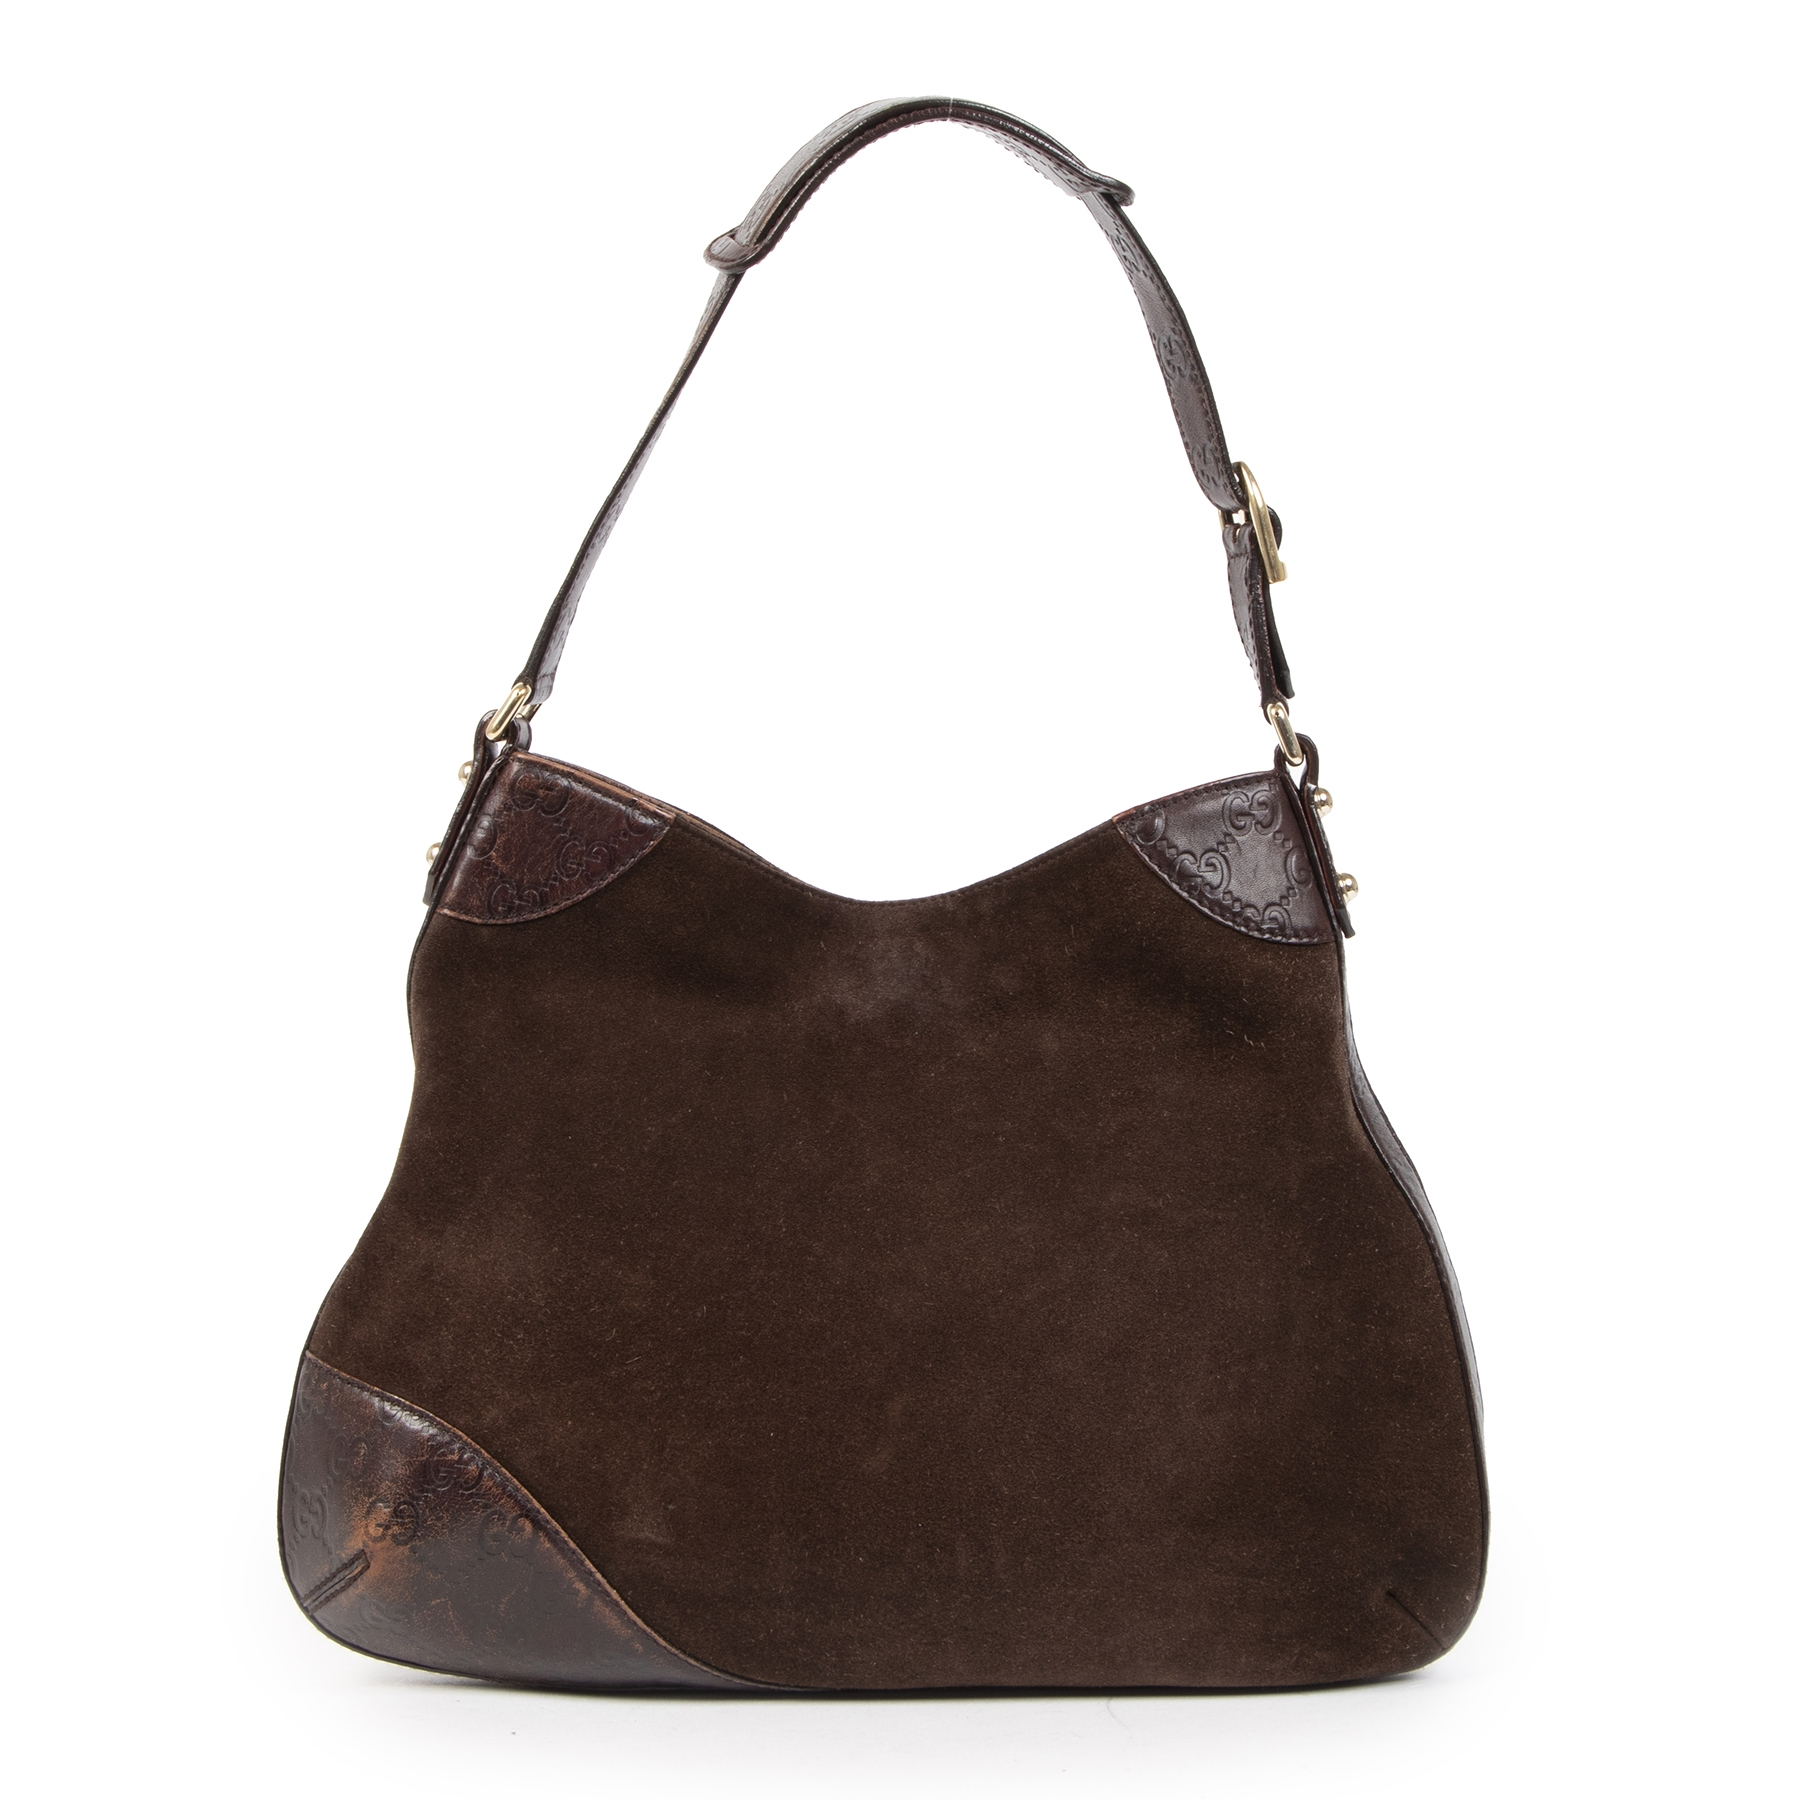 Authentieke tweedehands vintage Gucci Brown Hassler Hobo Bag  koop online webshop LabelLOV